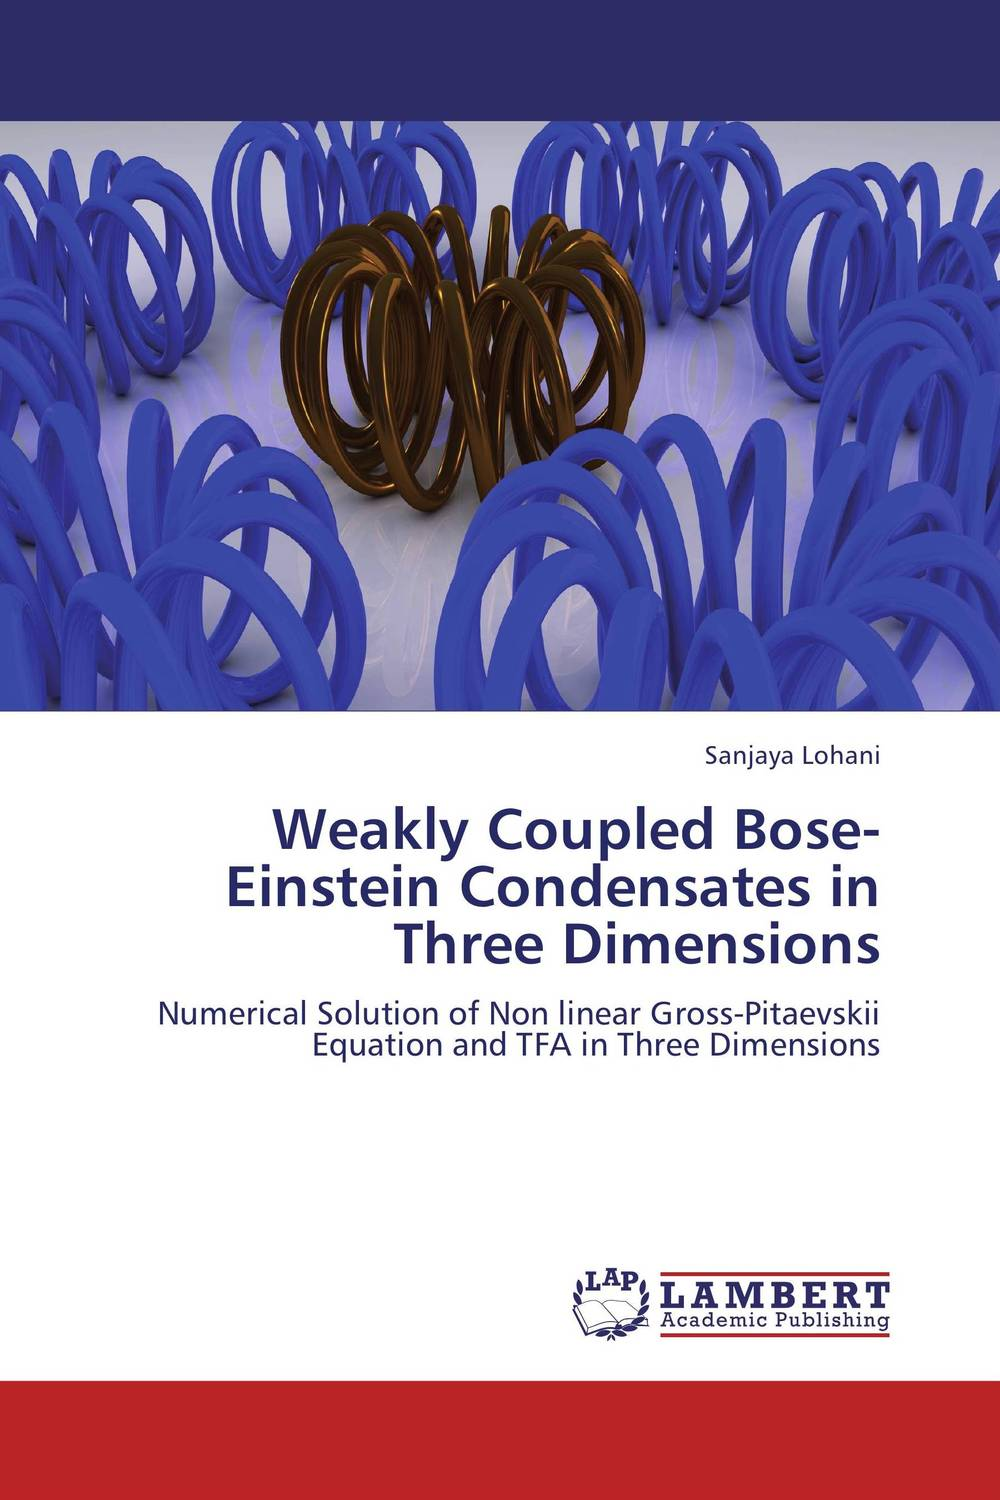 Weakly Coupled Bose-Einstein Condensates in Three Dimensions